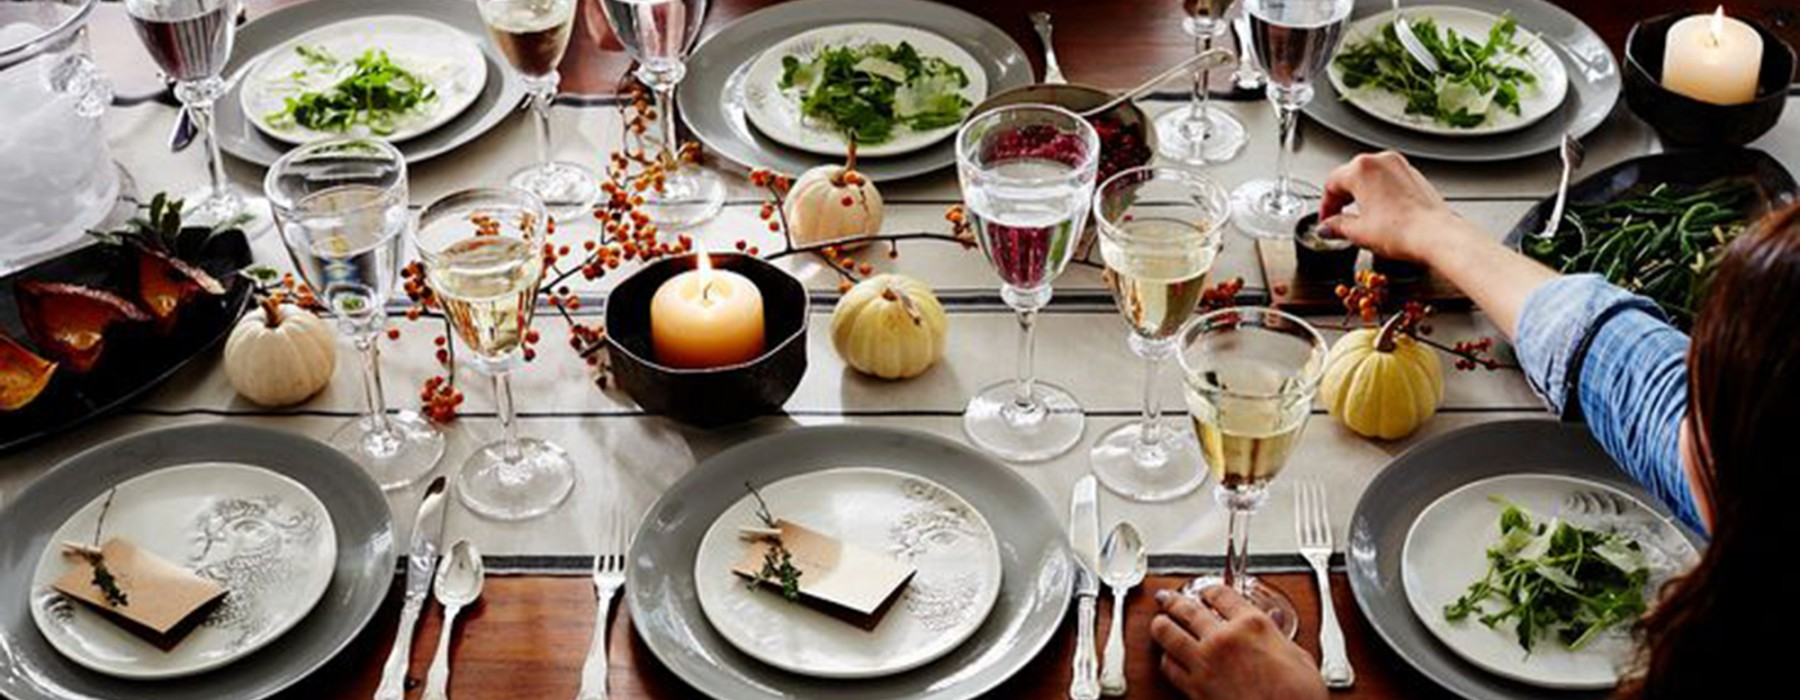 10 Inspiring Tablescapes (and Tips) for Thanksgiving